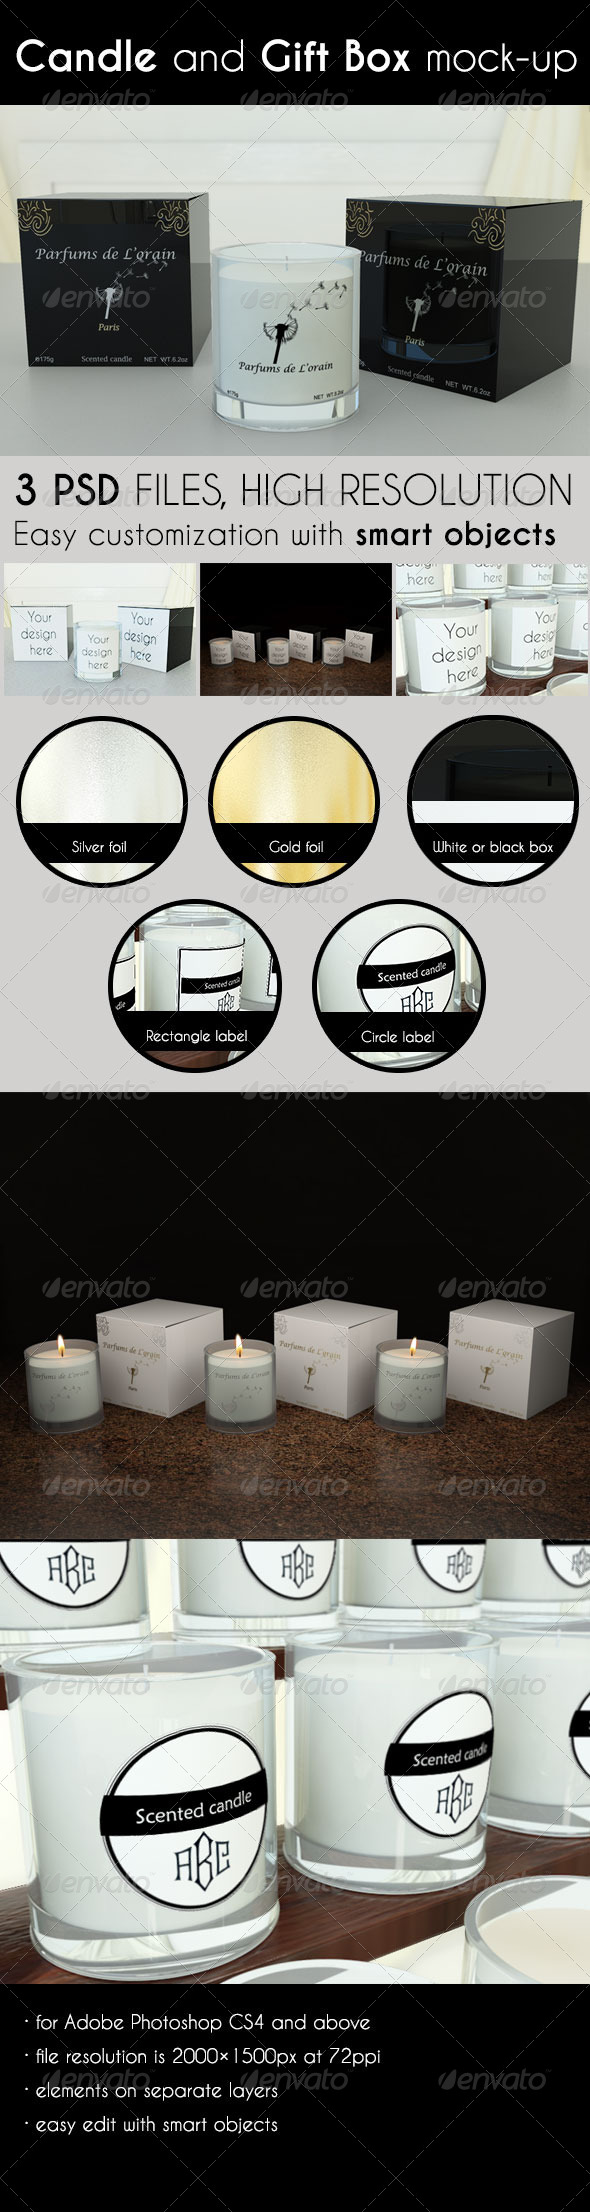 Candle and Gift Box Mock-Up